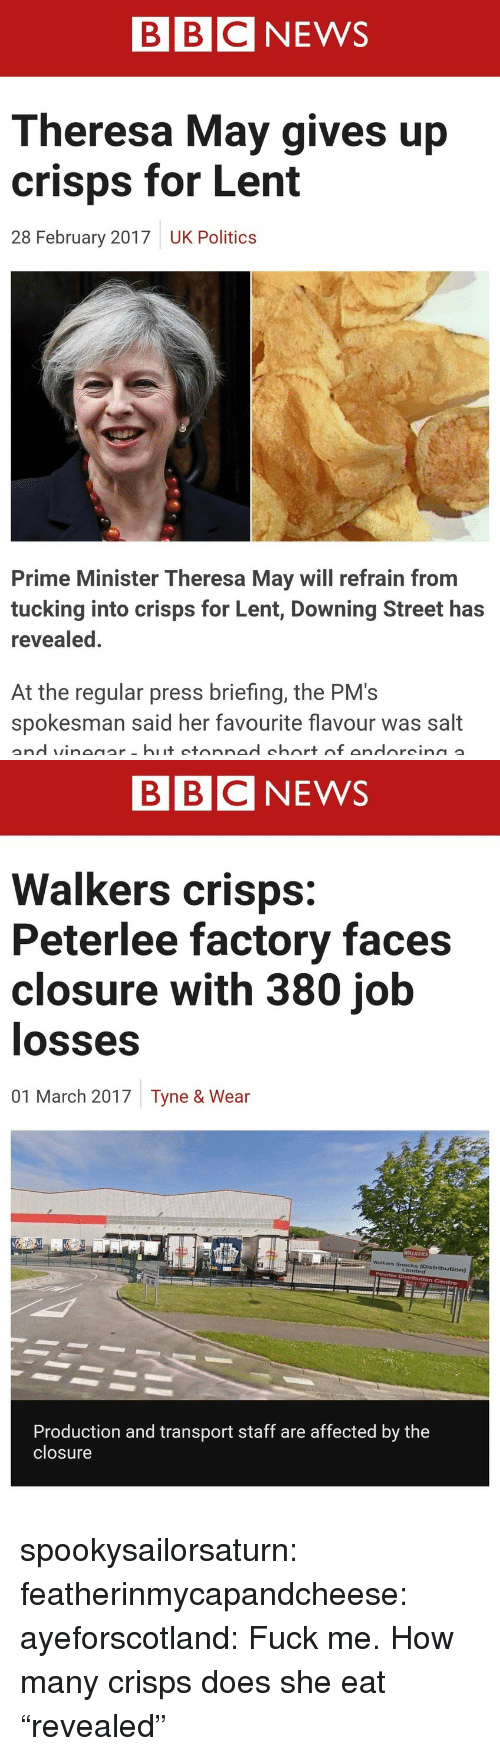 "News, Politics, and Target: BBC NEWS  Theresa May gives up  crisps for Lent  28 February 2017  UK Politics  Prime Minister Theresa May will refrain from  tucking into crisps for Lent, Downing Street has  revealed.  At the regular press briefing, the PM's  spokesman said her favourite flavour was salt   BBCNEWS  Walkers crisps:  Peterlee factory faces  closure with 380 job  losses  01 March 2017  Tyne & Wear  Walkers Snacks  Limited  Production and transport staff are affected by the  closure spookysailorsaturn:  featherinmycapandcheese:  ayeforscotland: Fuck me.  How many crisps does she eat   ""revealed"""